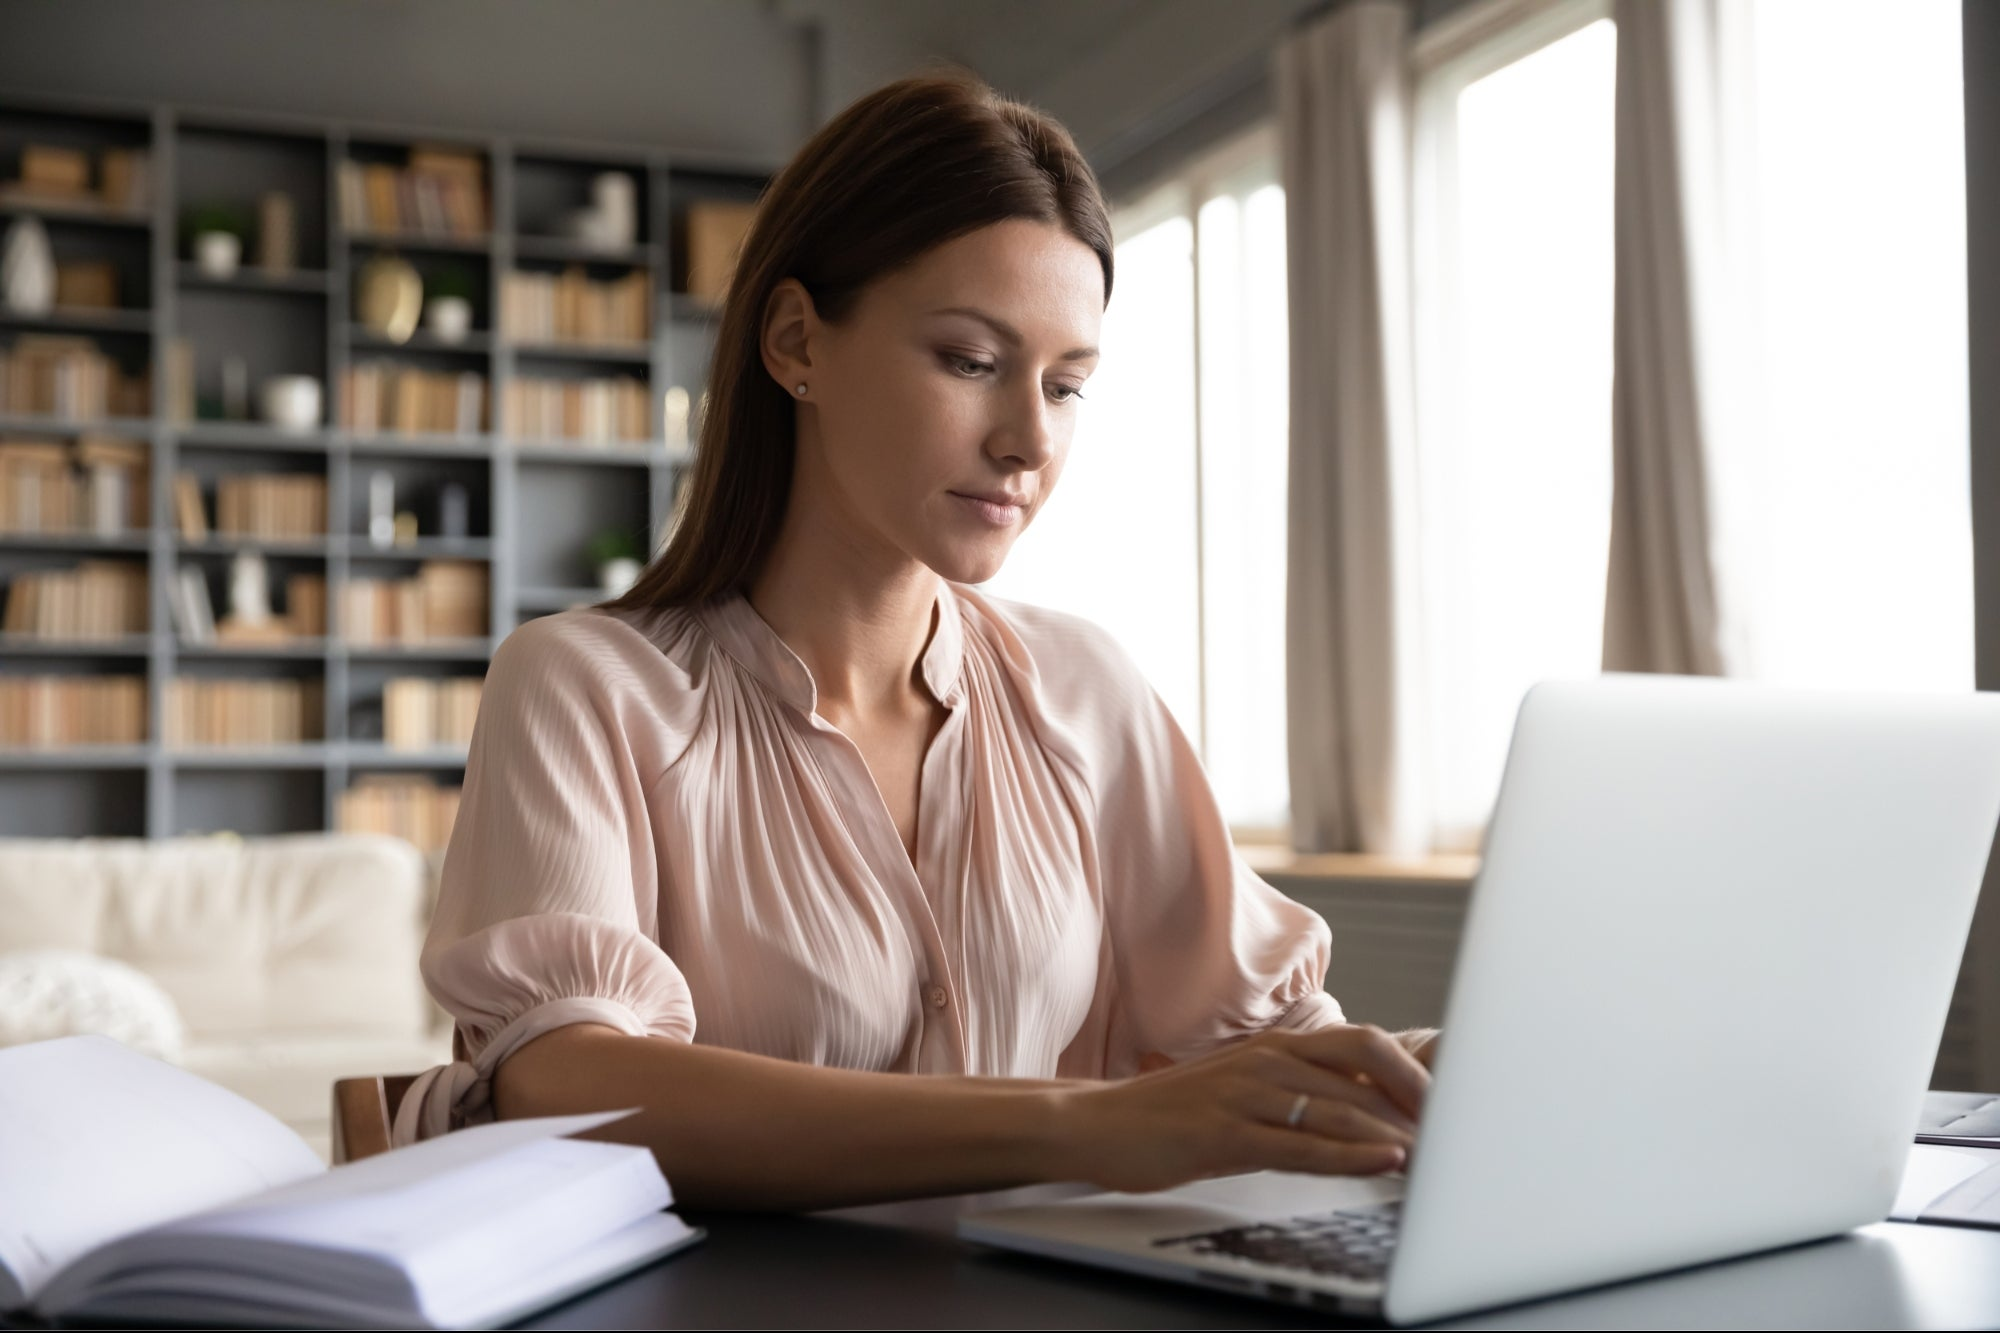 How to Work From Home Without Getting Bored